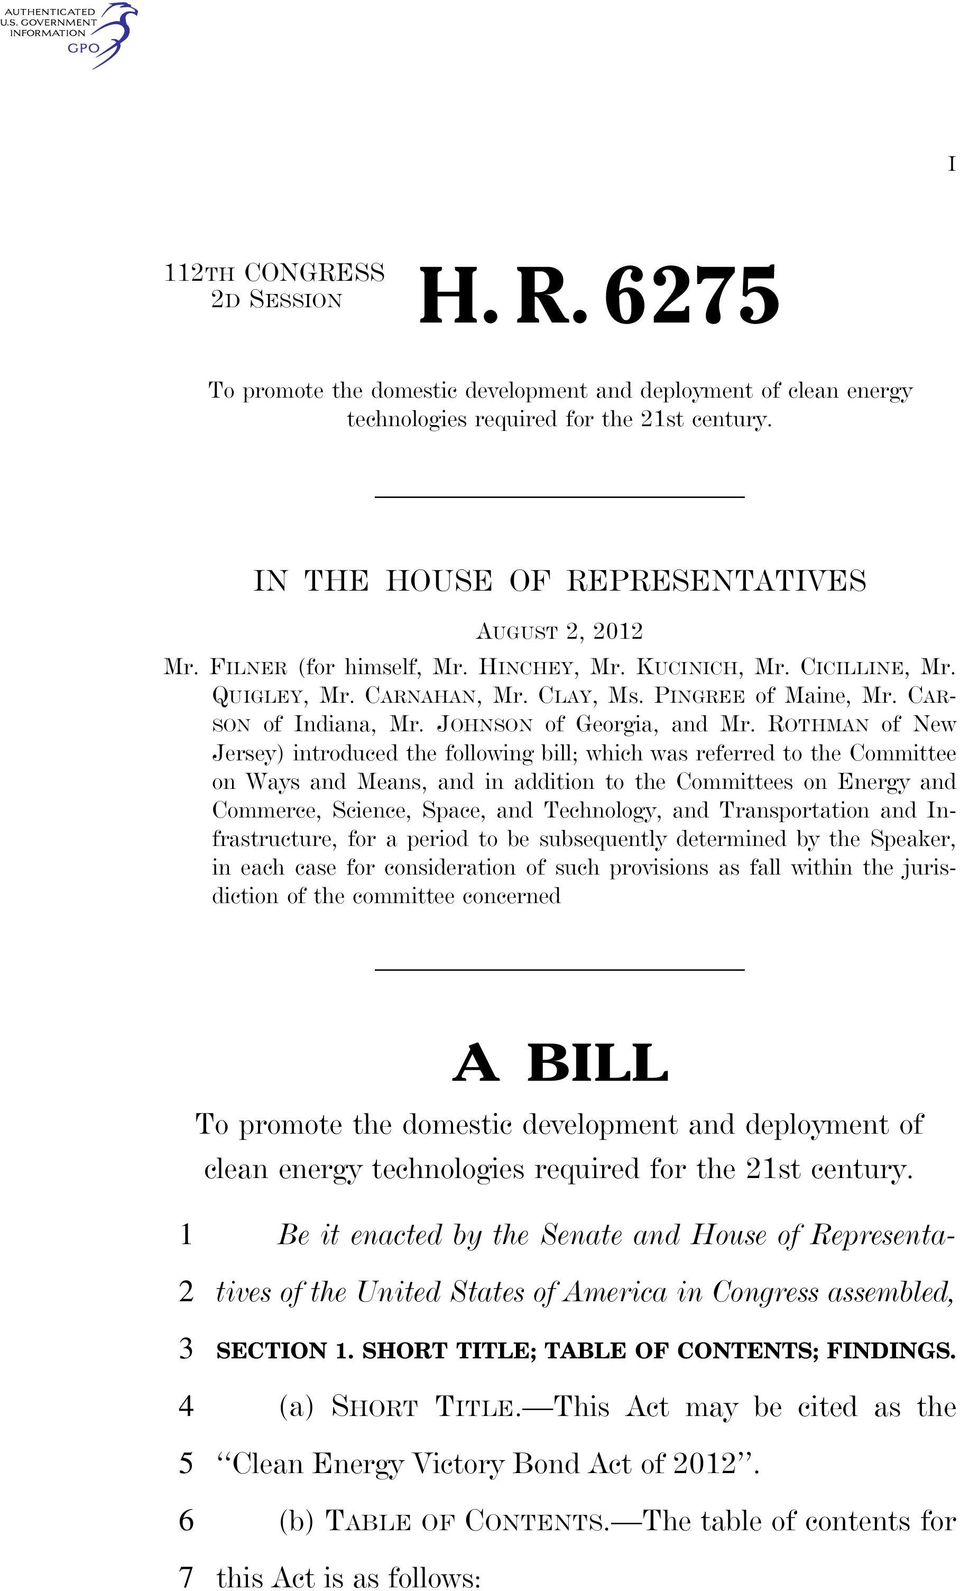 ROTHMAN of New Jersey) introduced the following bill; which was referred to the Committee on Ways and Means, and in addition to the Committees on Energy and Commerce, Science, Space, and Technology,